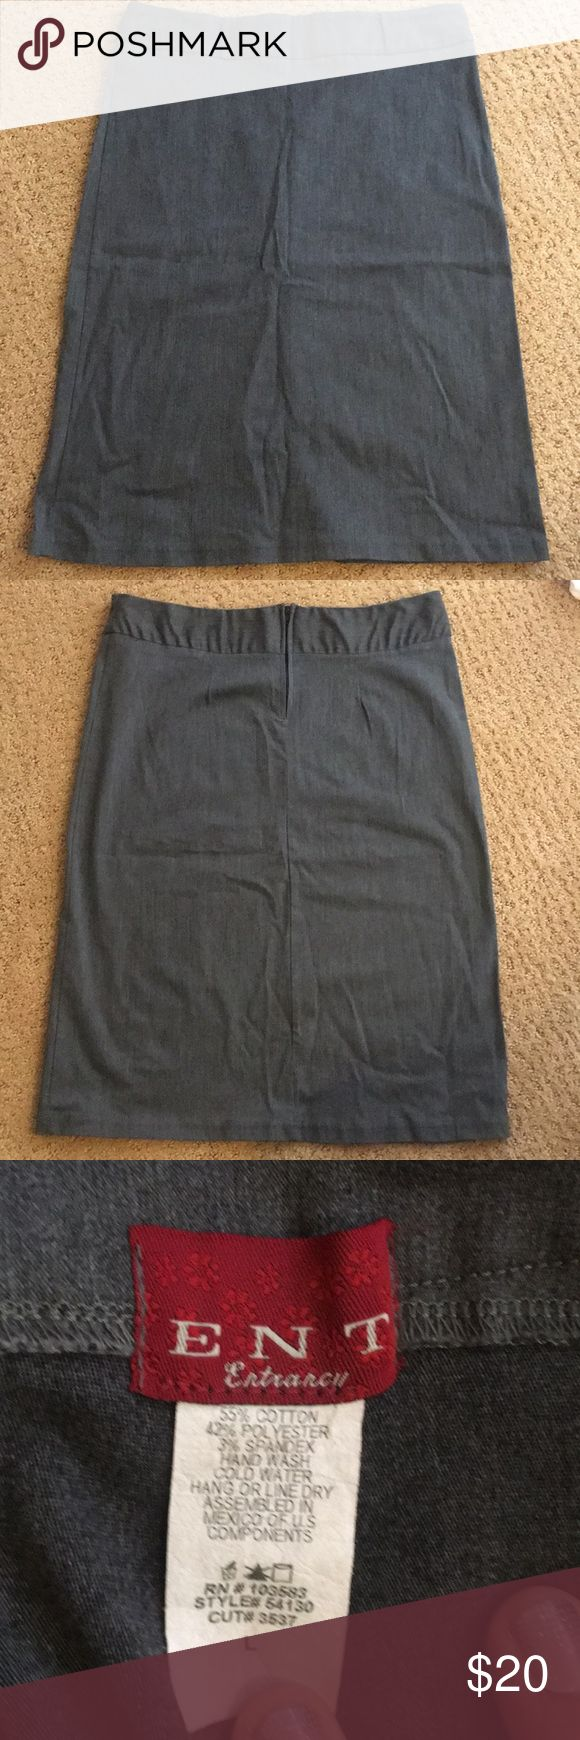 Pencil Skirt Grey Pencil Skirt Size Large Good Condition Nice stretch See photos for measurements ENT Entrarcy Skirts Pencil